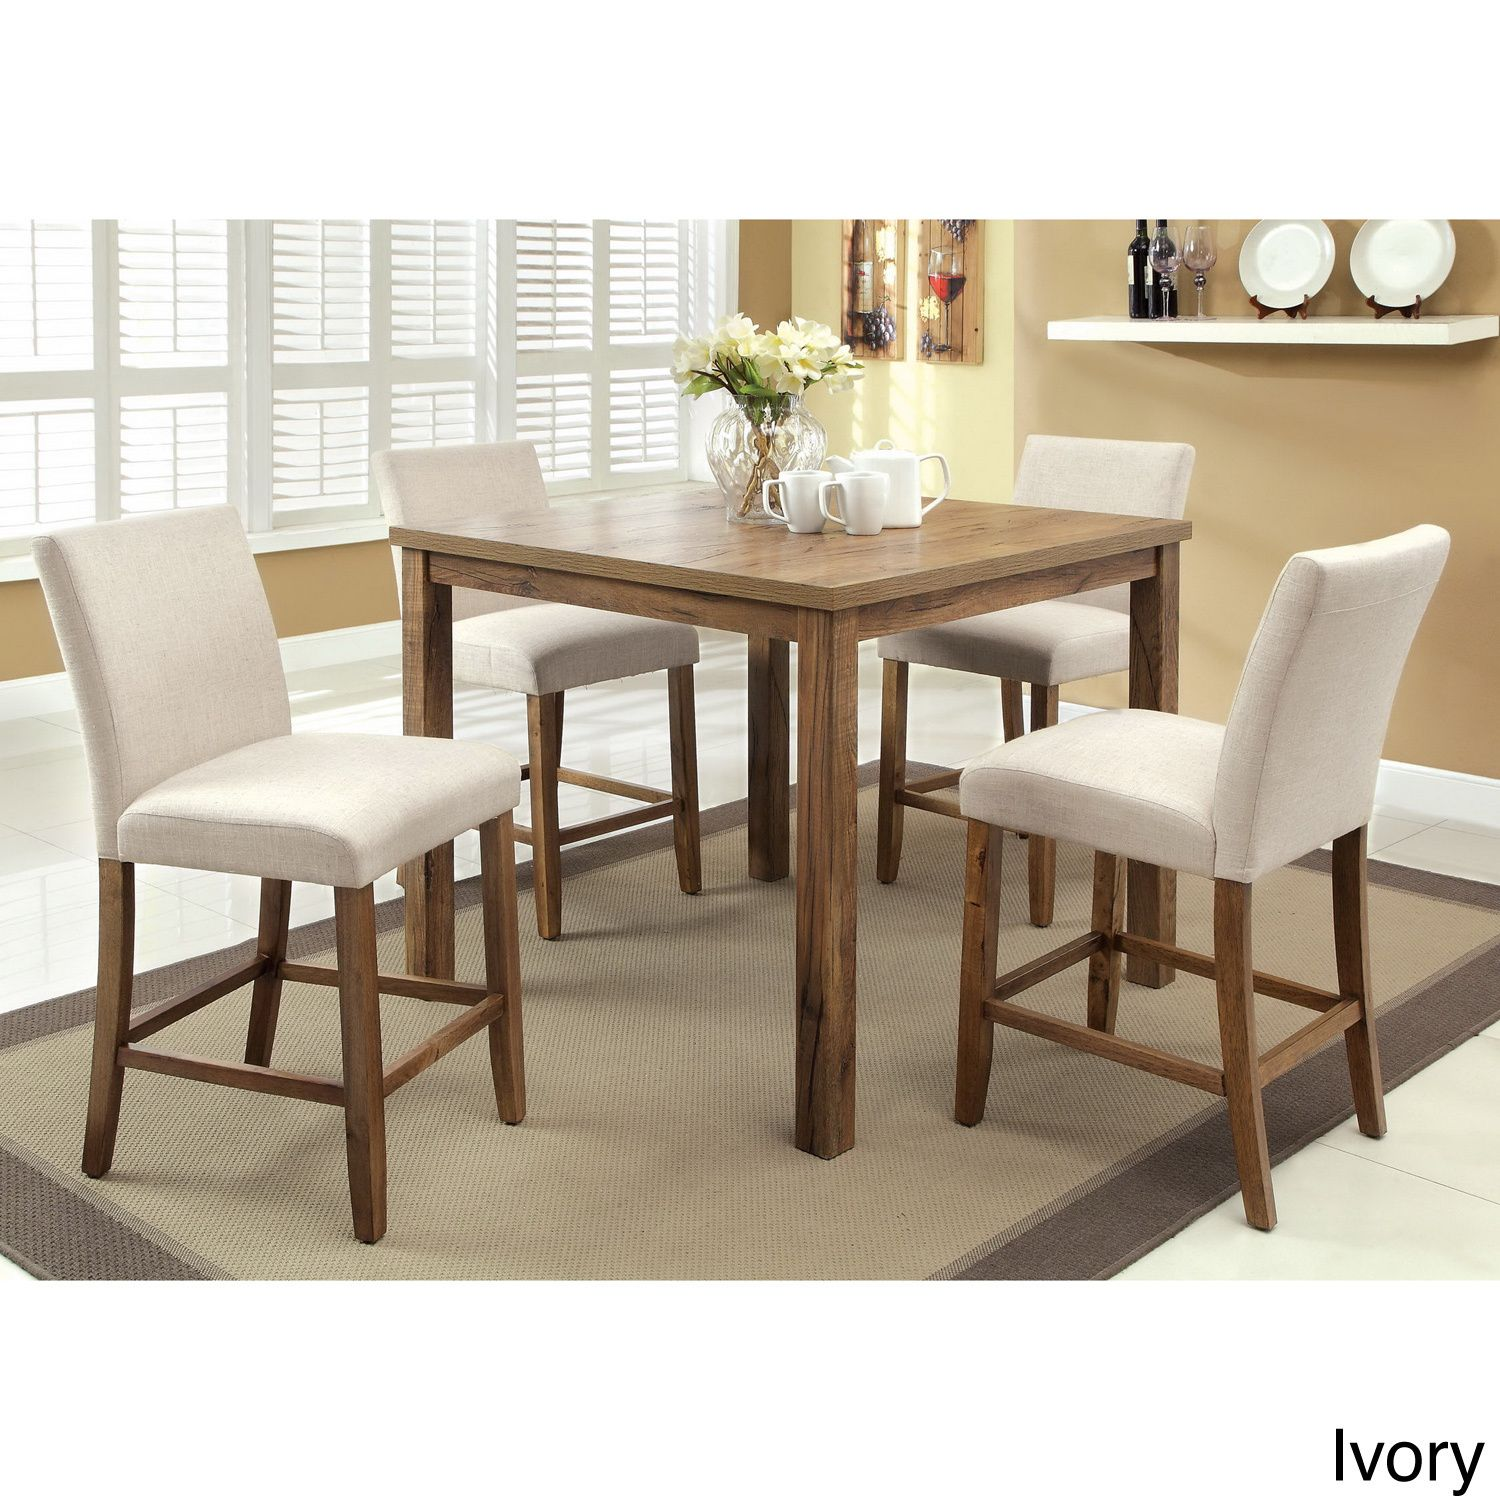 Enjoy Rustic Appeal With A Modern Twist. The Compact Seline 5 Piece Dining  Set